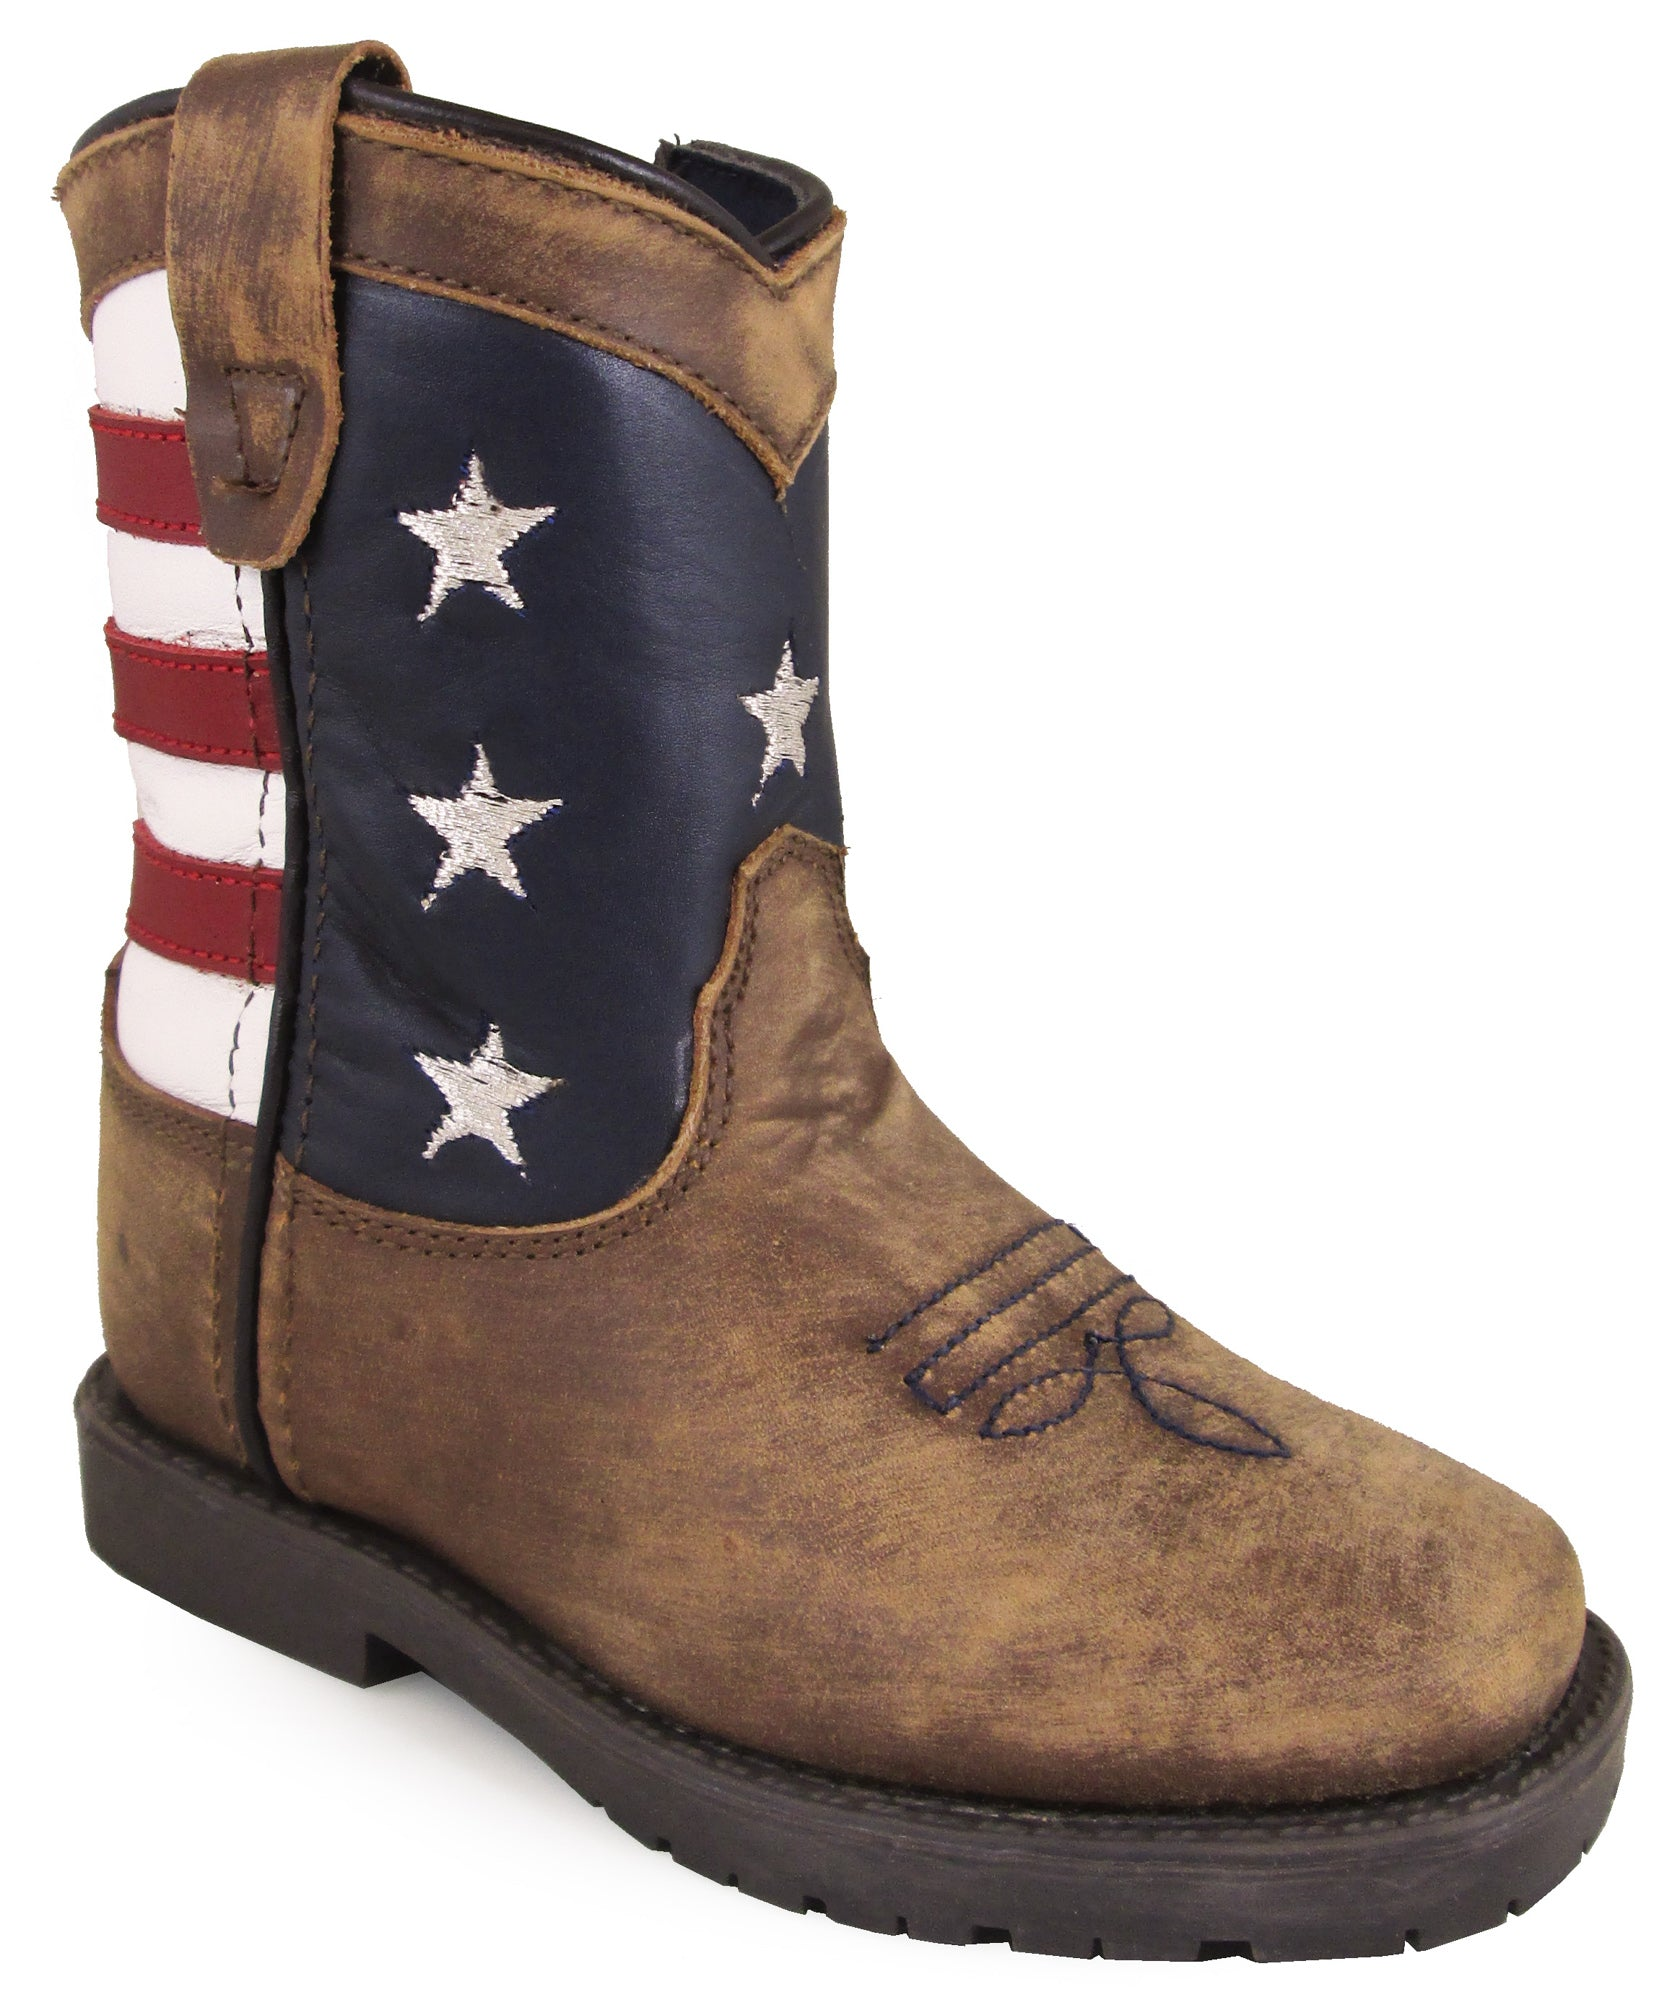 a2d08a5a2d8 Smoky Mountain Toddler Boys Stars And Stripes Brown Leather Cowboy Boots